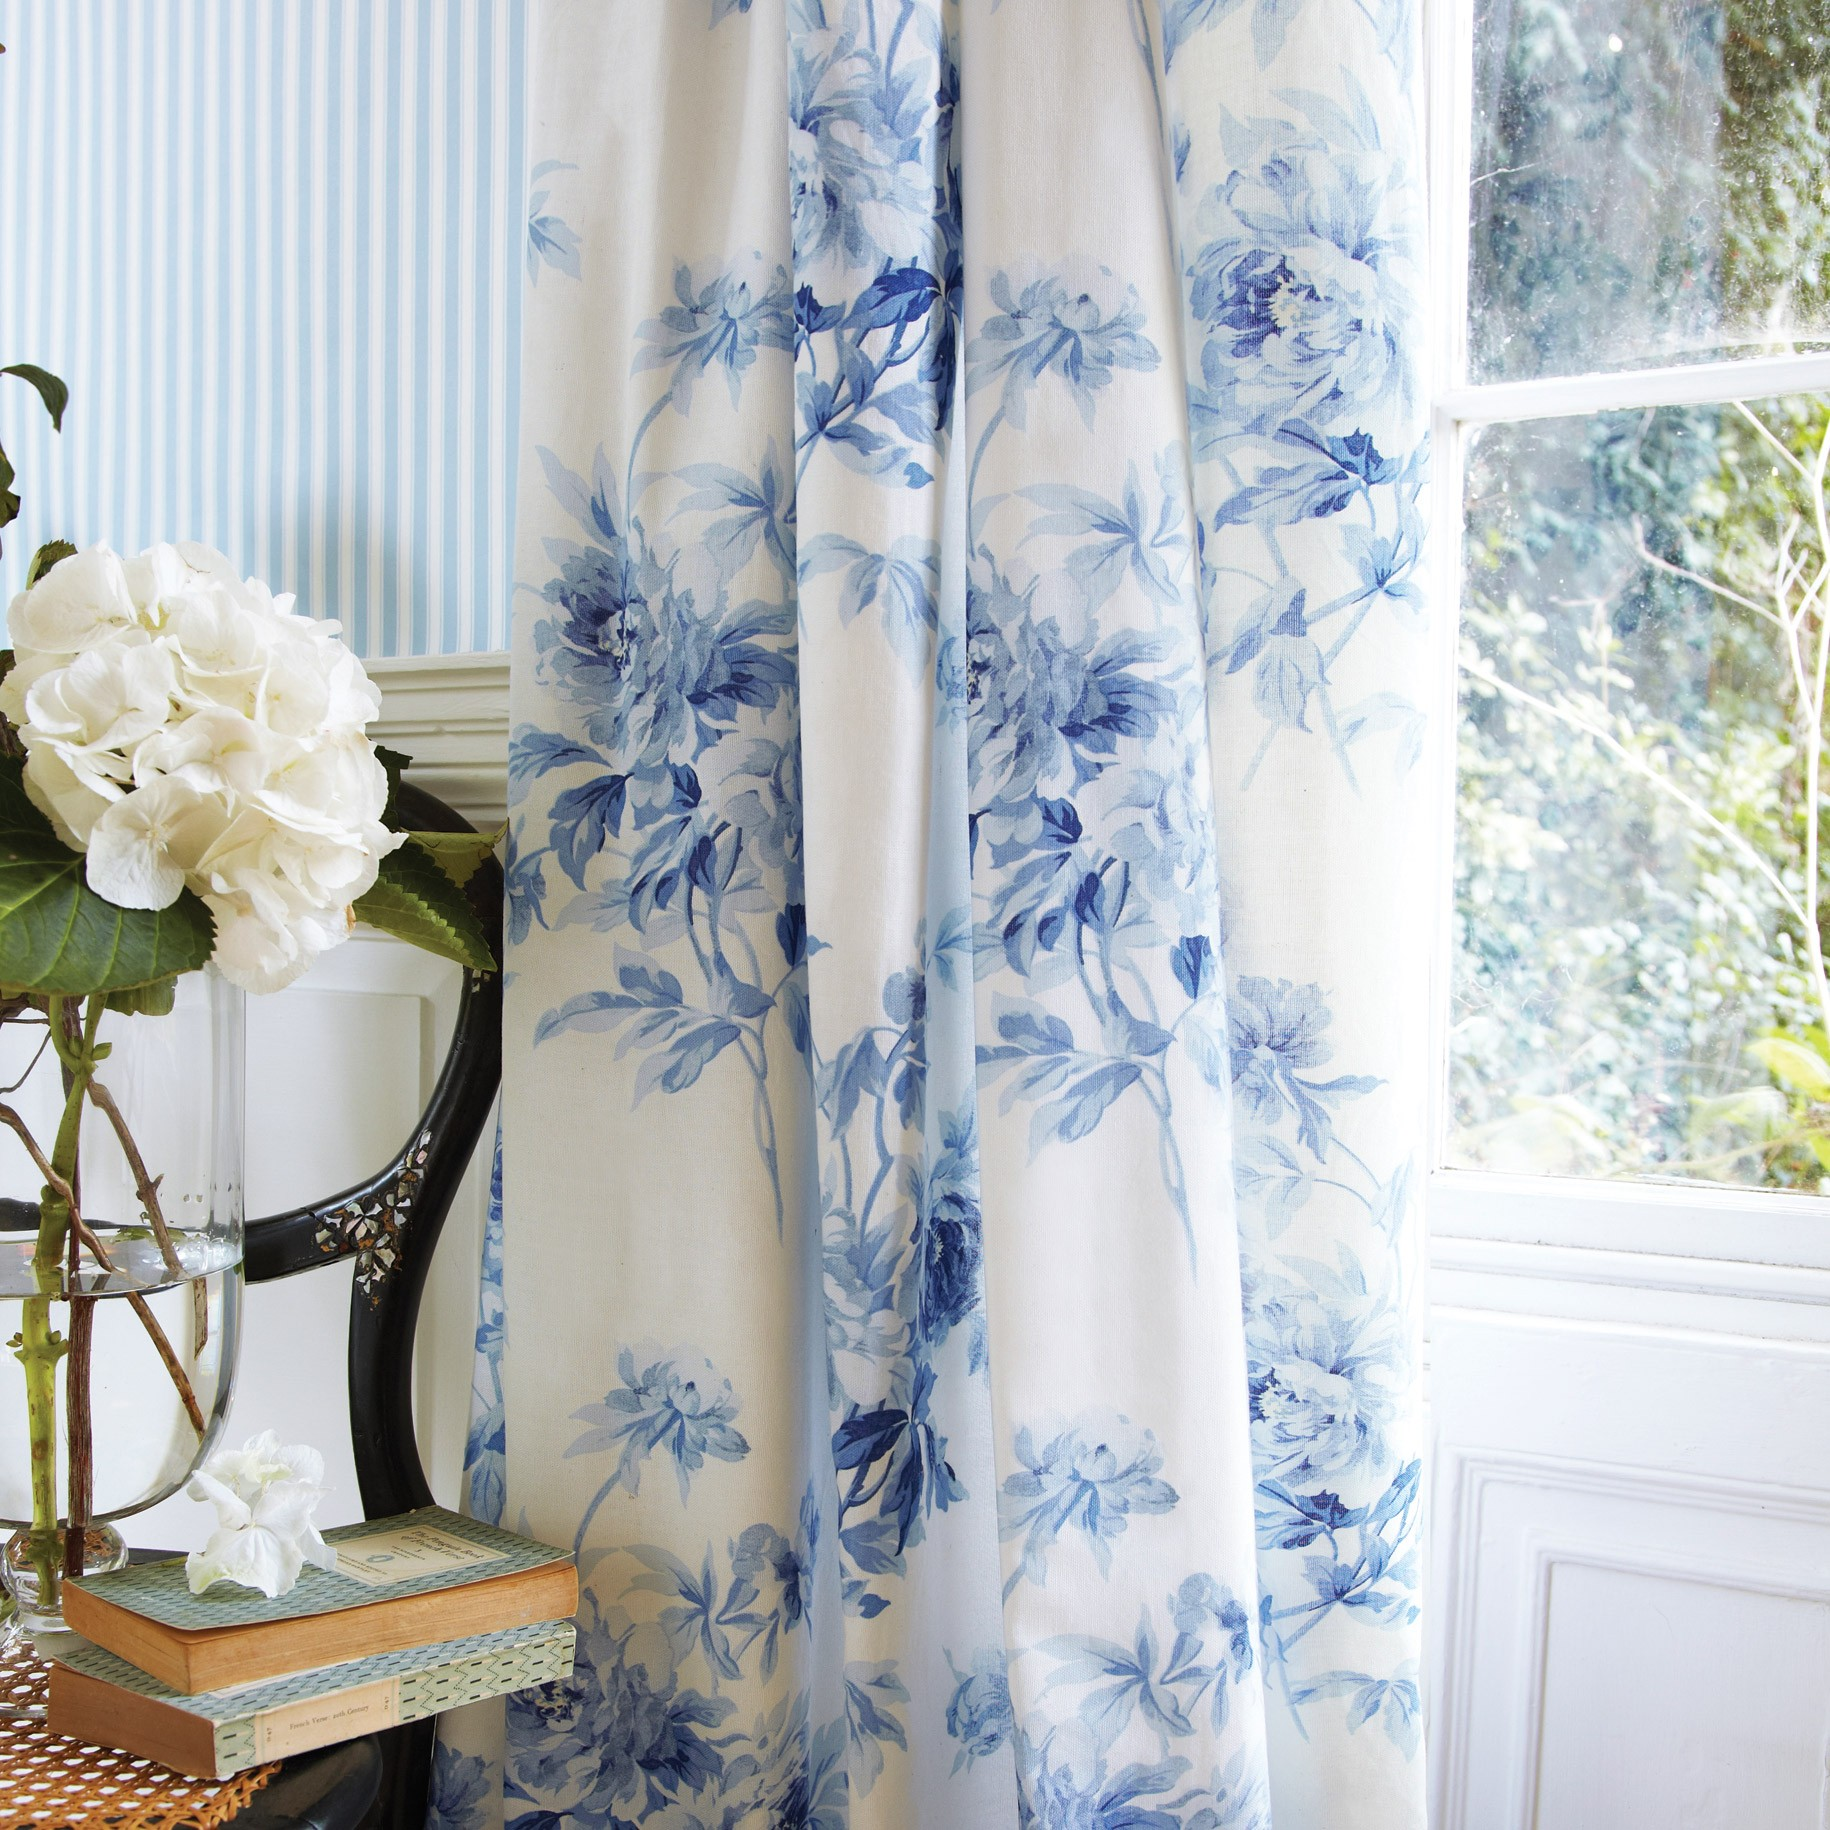 Perfect Blue Floral Curtains   5 Linen Dry Ideas Cynthia Jacobean Shower Curtain In  Blue In Blue Floral Curtains